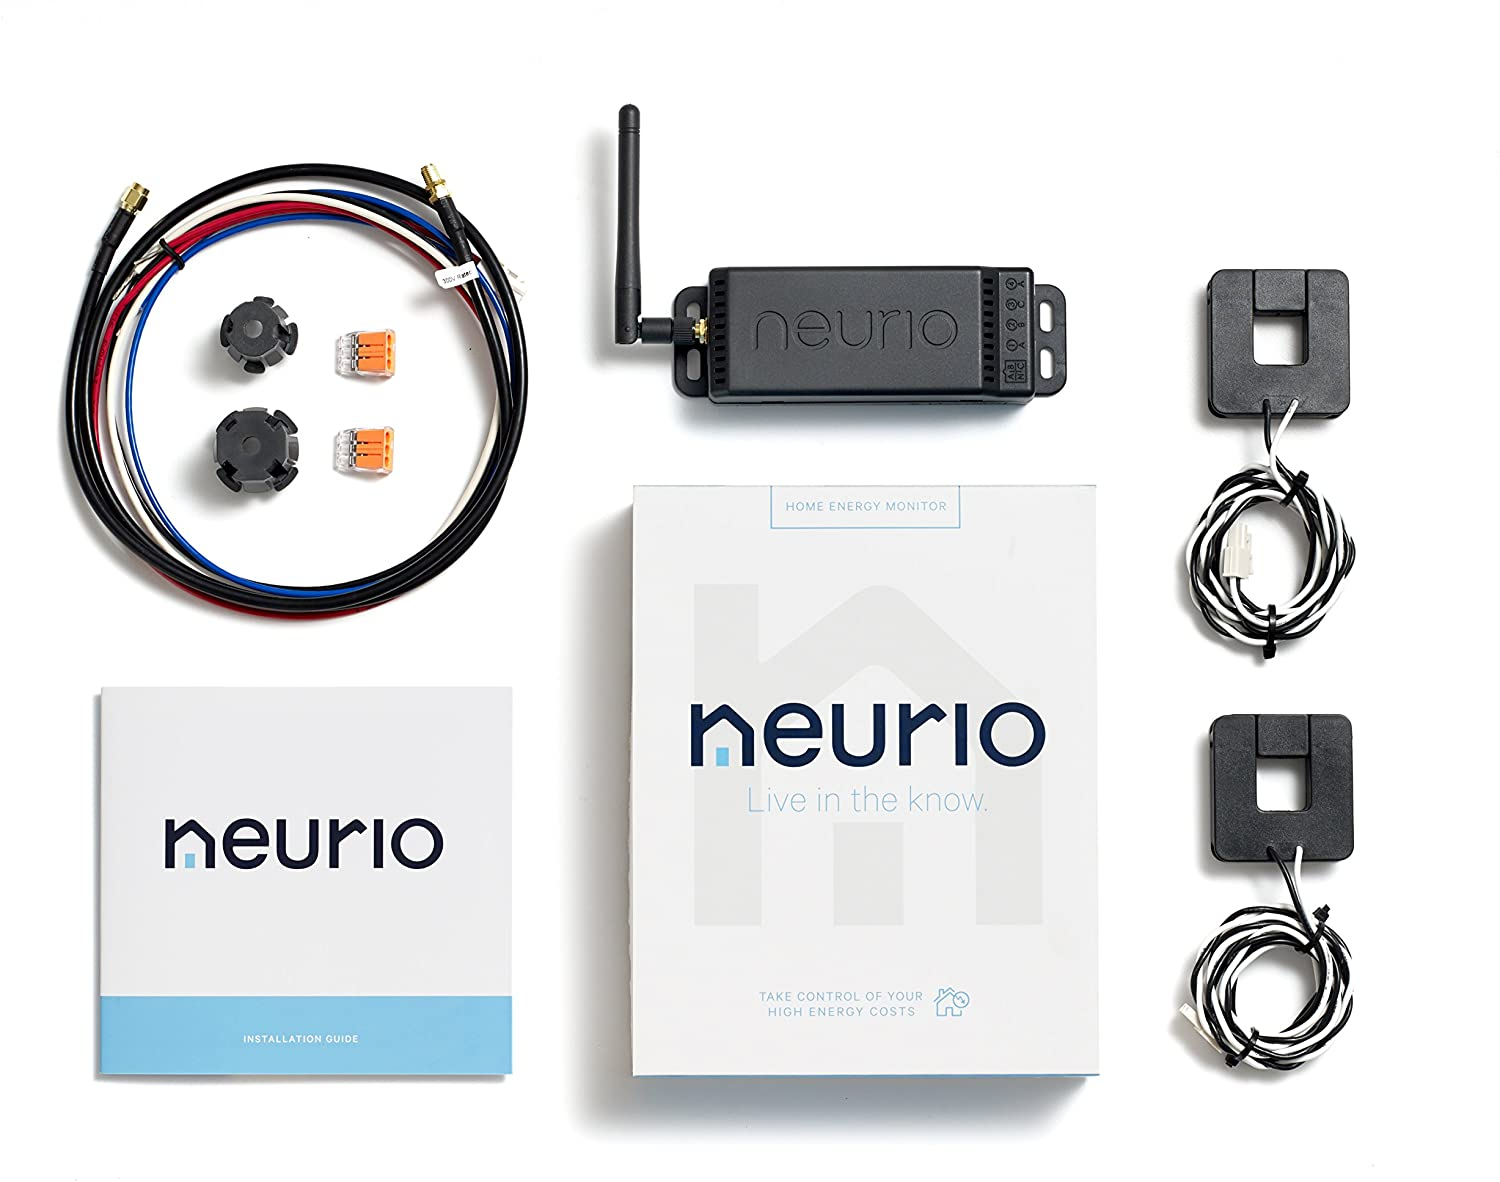 Neurio Energy Monitor